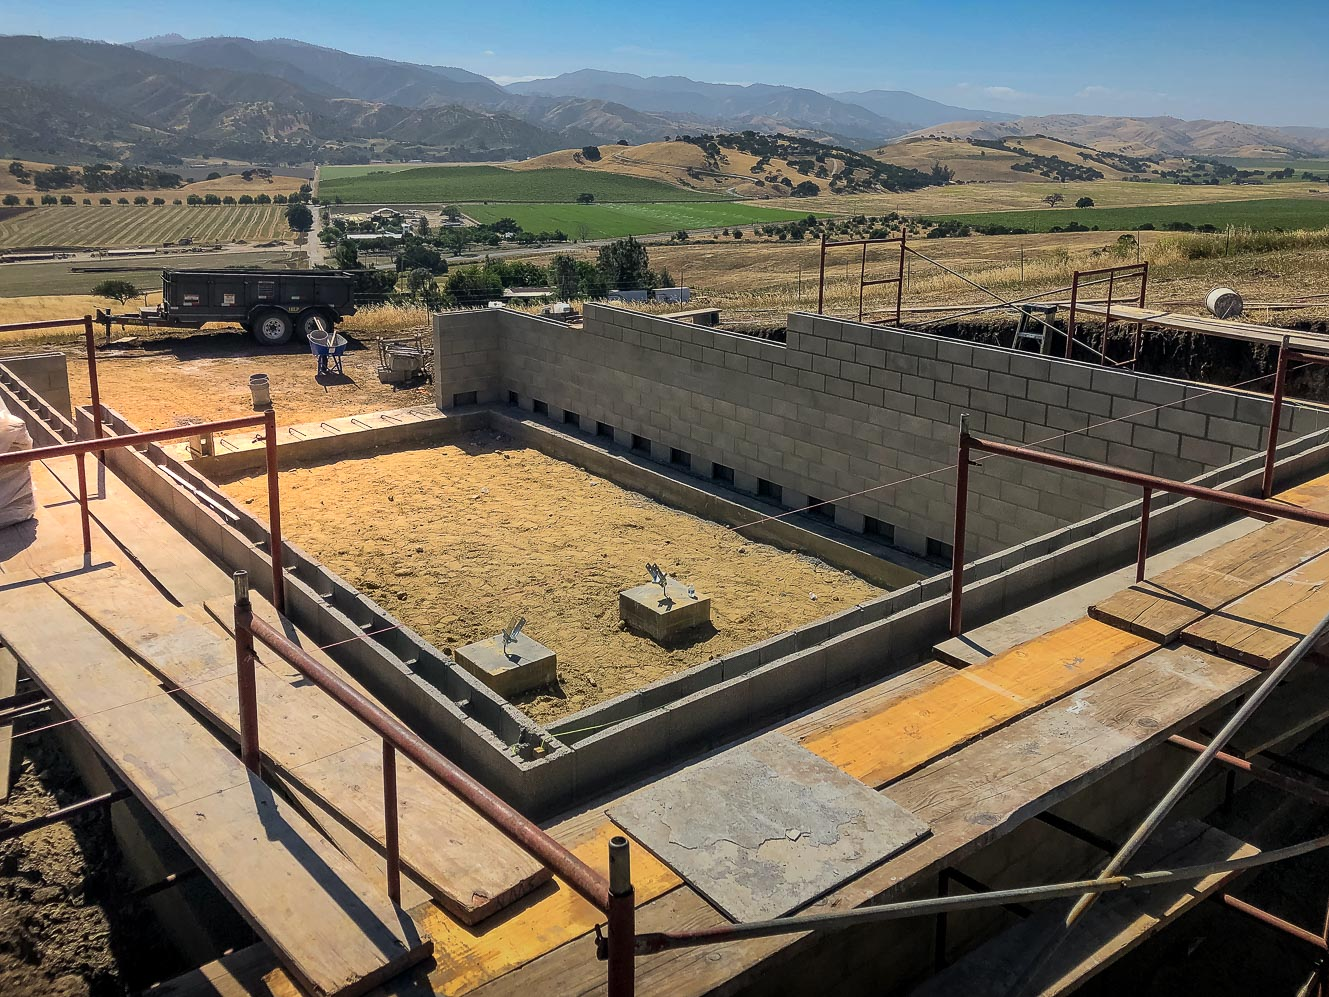 Basement blocks are installed at our new home site in Paicines, CA.